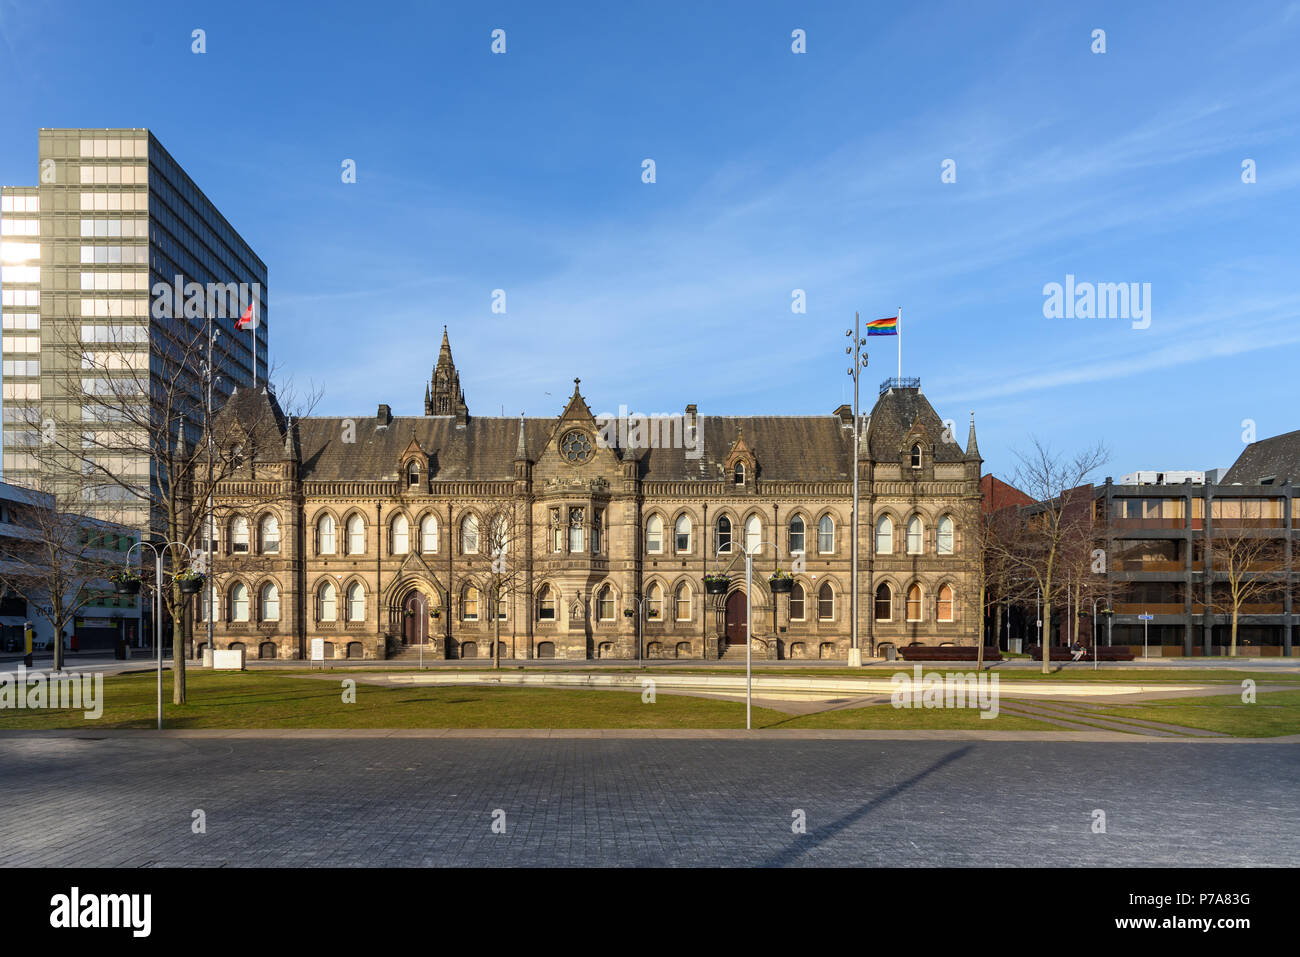 Town hall of Middlesbrough city , Teeside UK Stock Photo